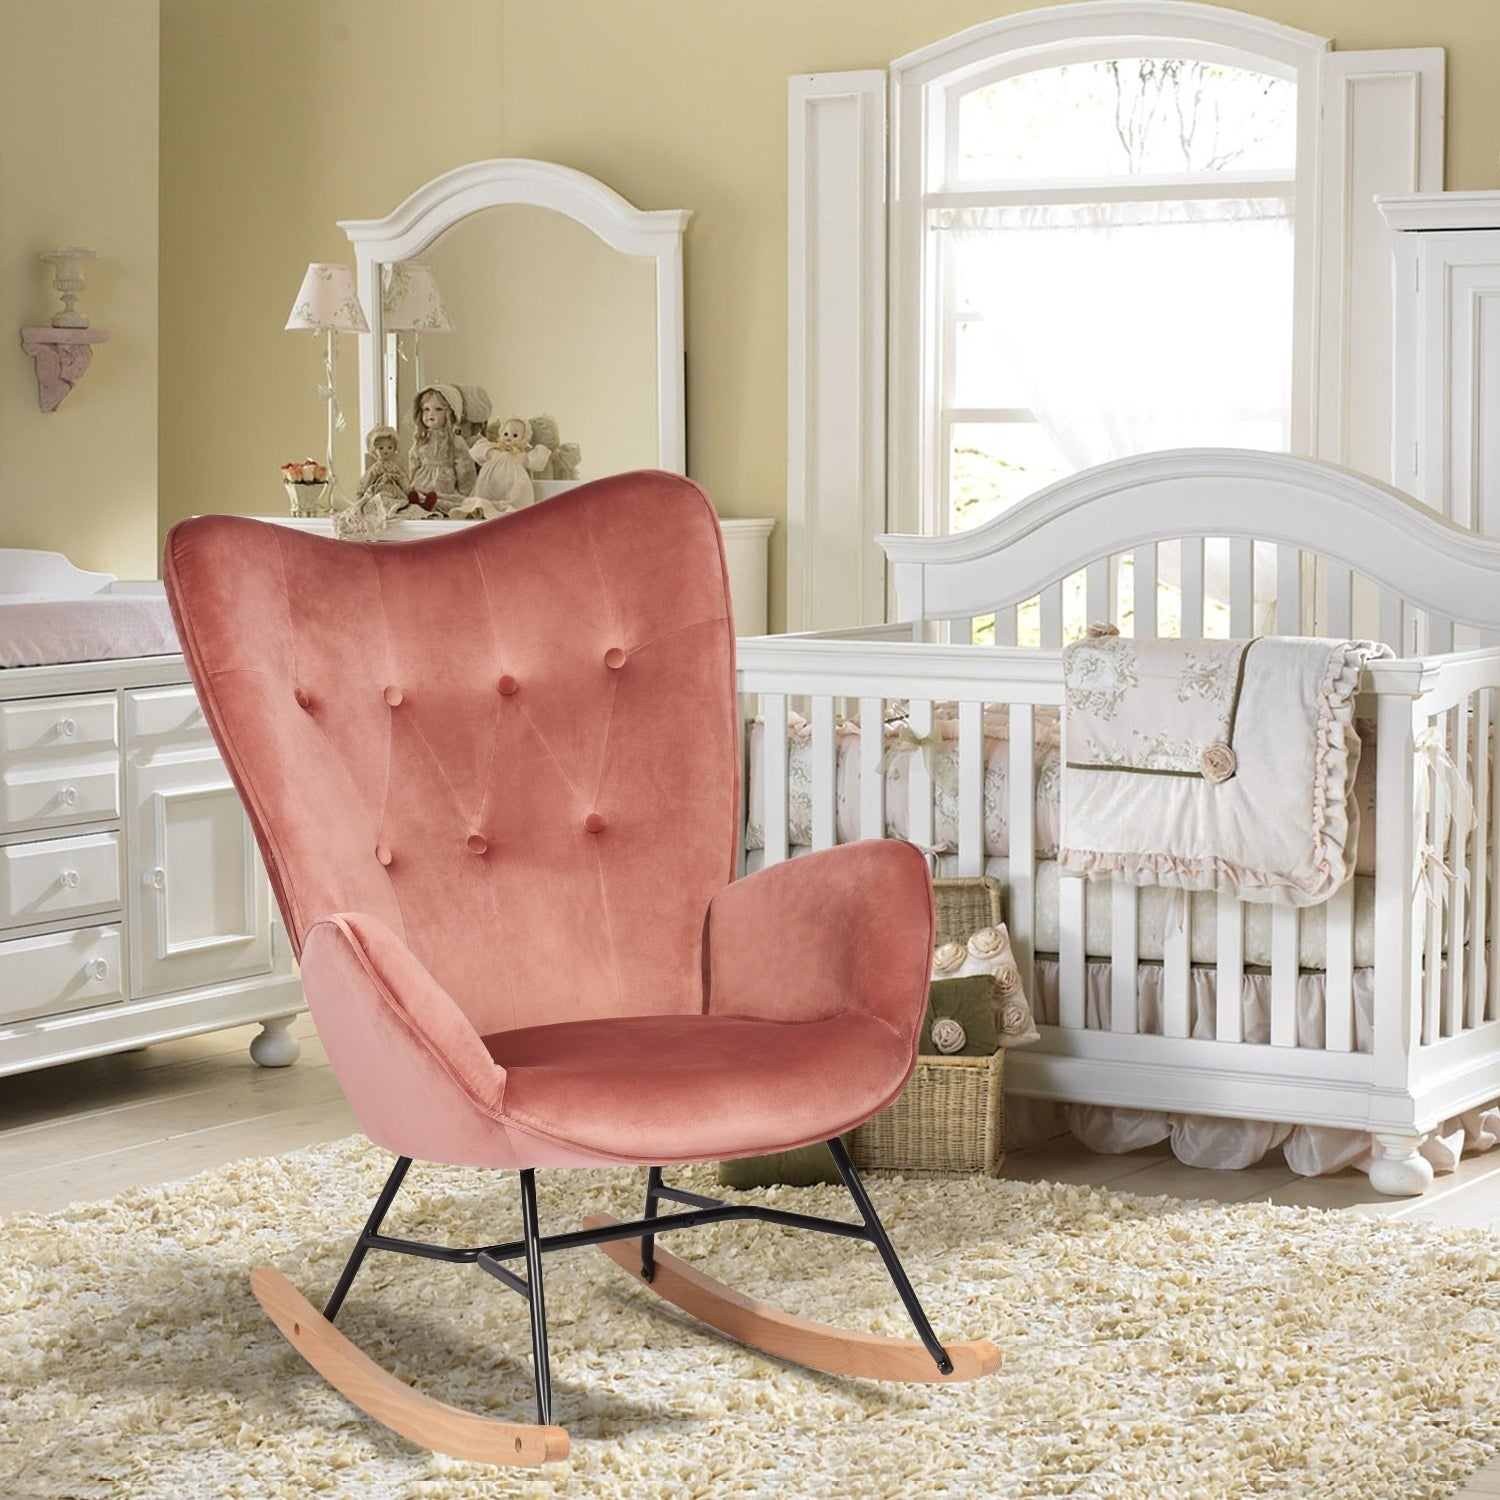 Tremendous Rocking Chairs Living Room Chairs Shop Online At Overstock Andrewgaddart Wooden Chair Designs For Living Room Andrewgaddartcom